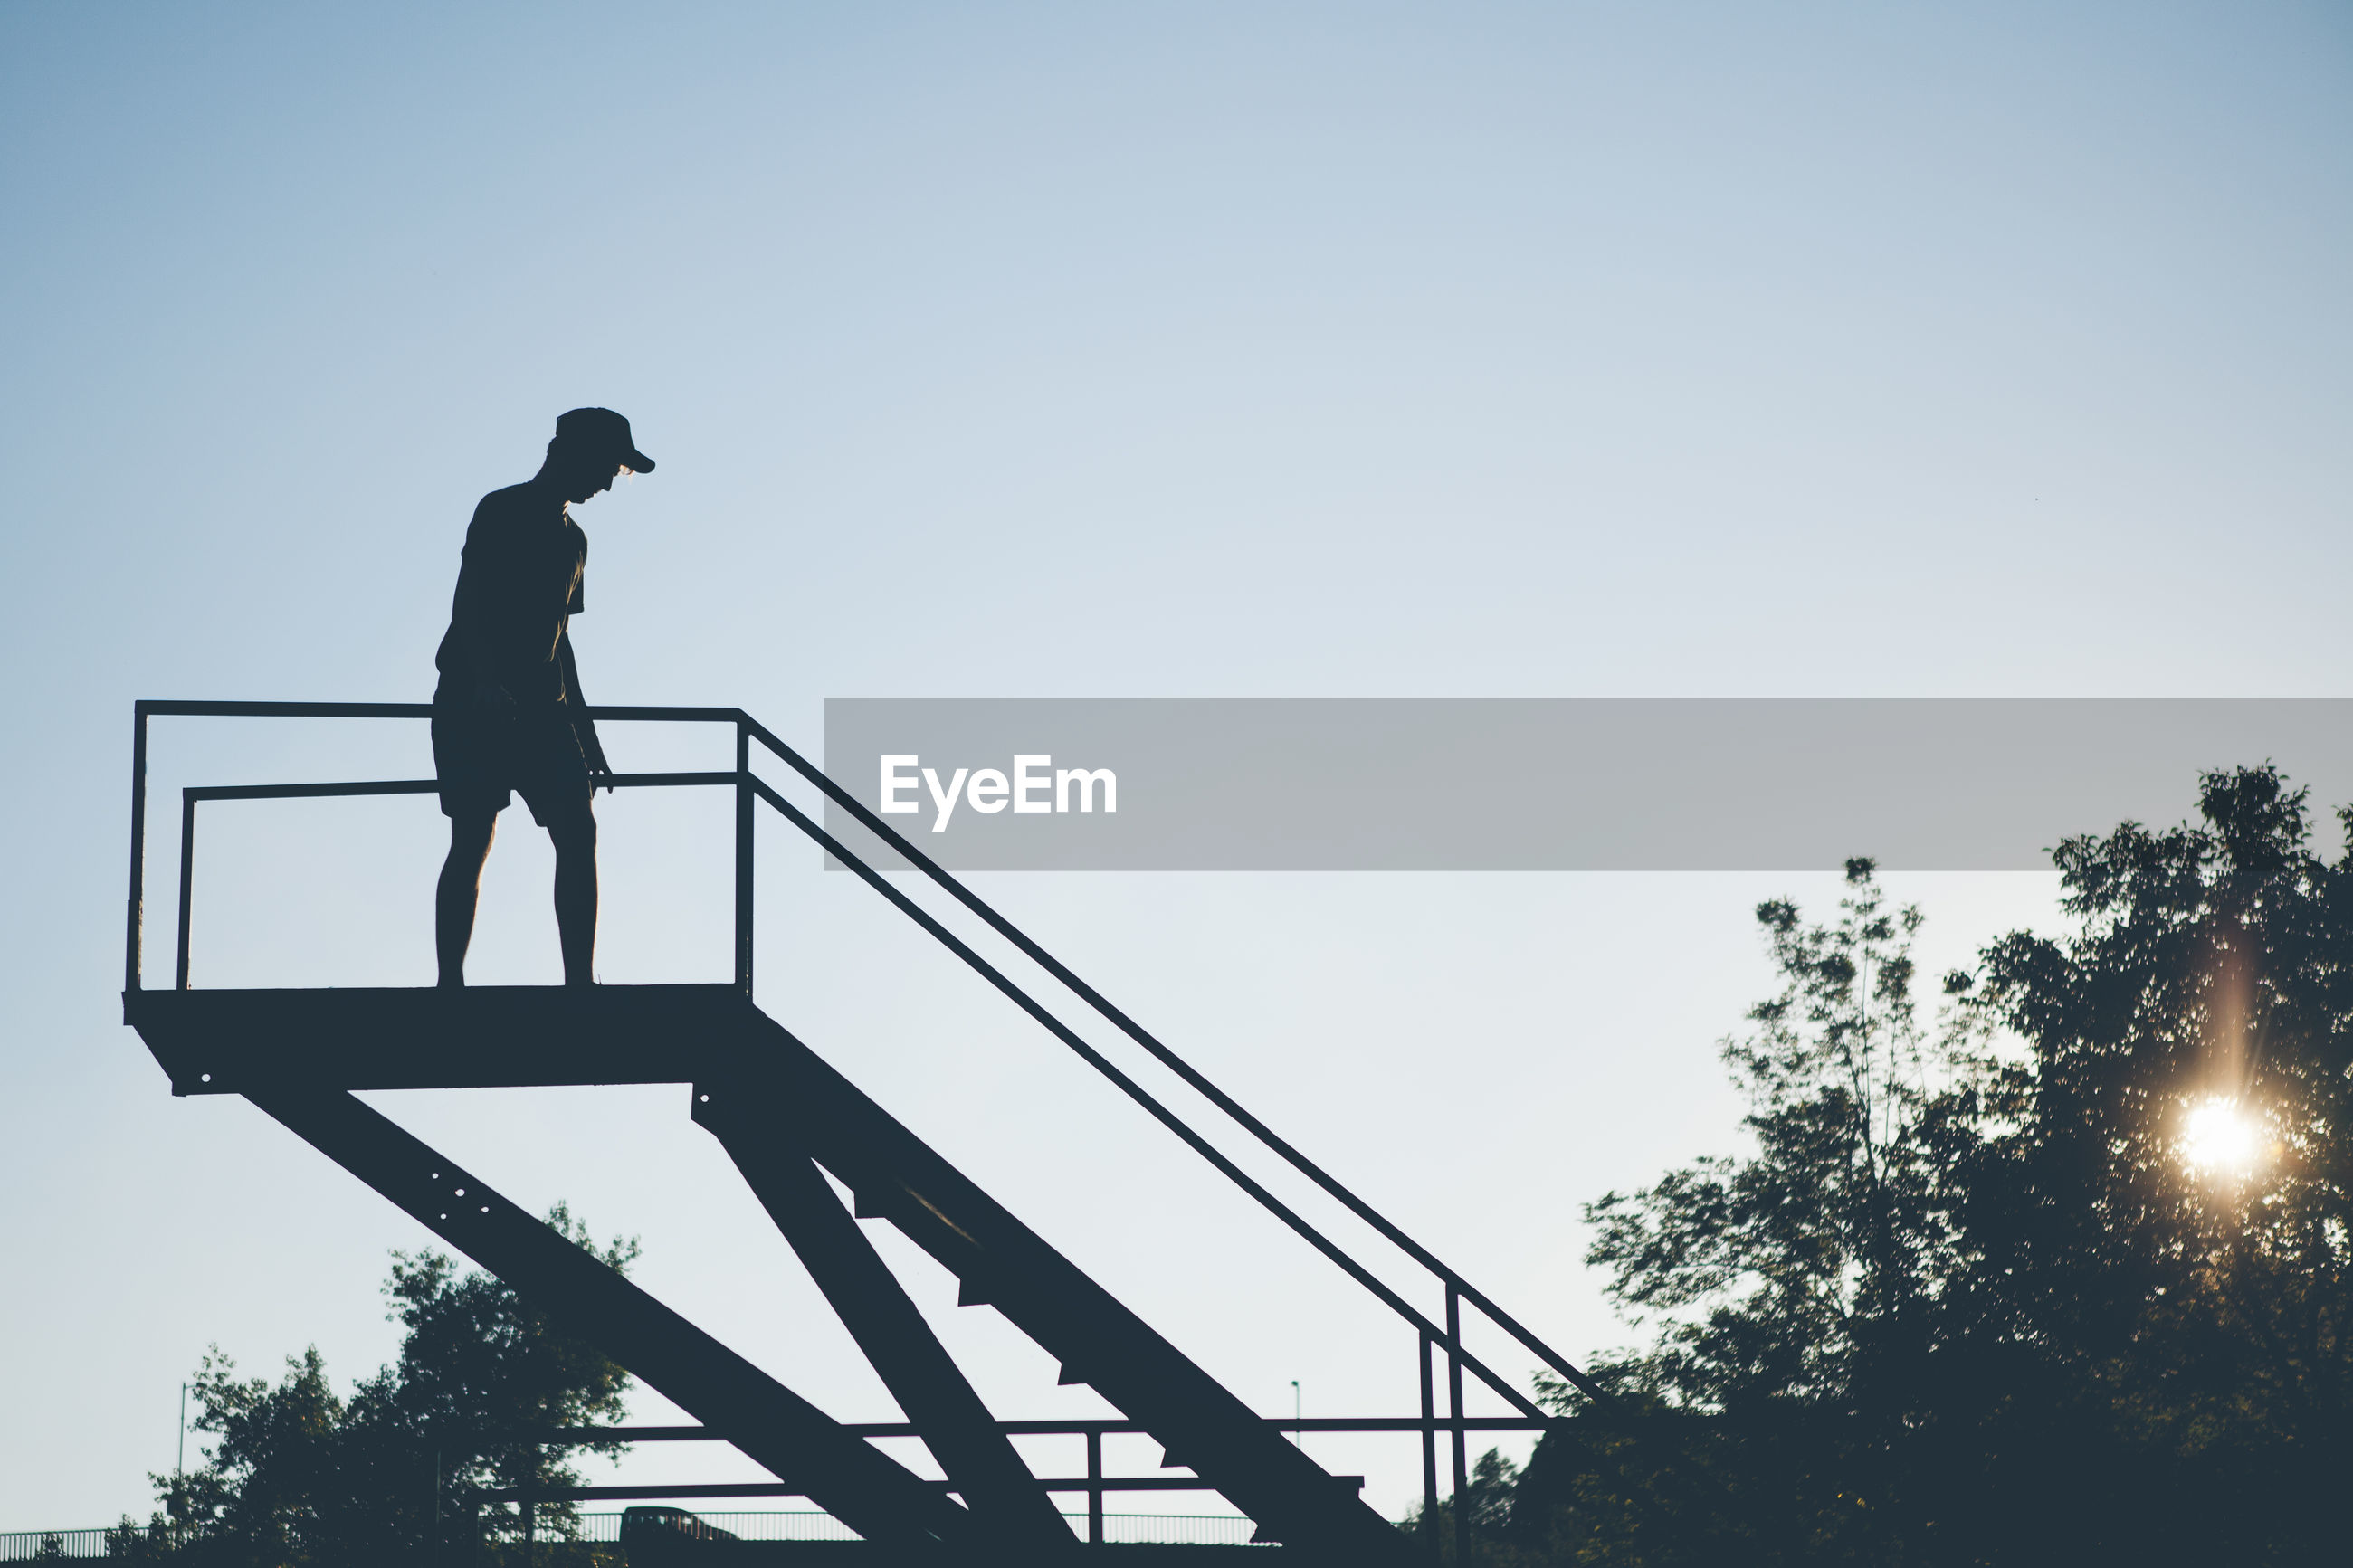 Low angle view of man on steps against clear sky